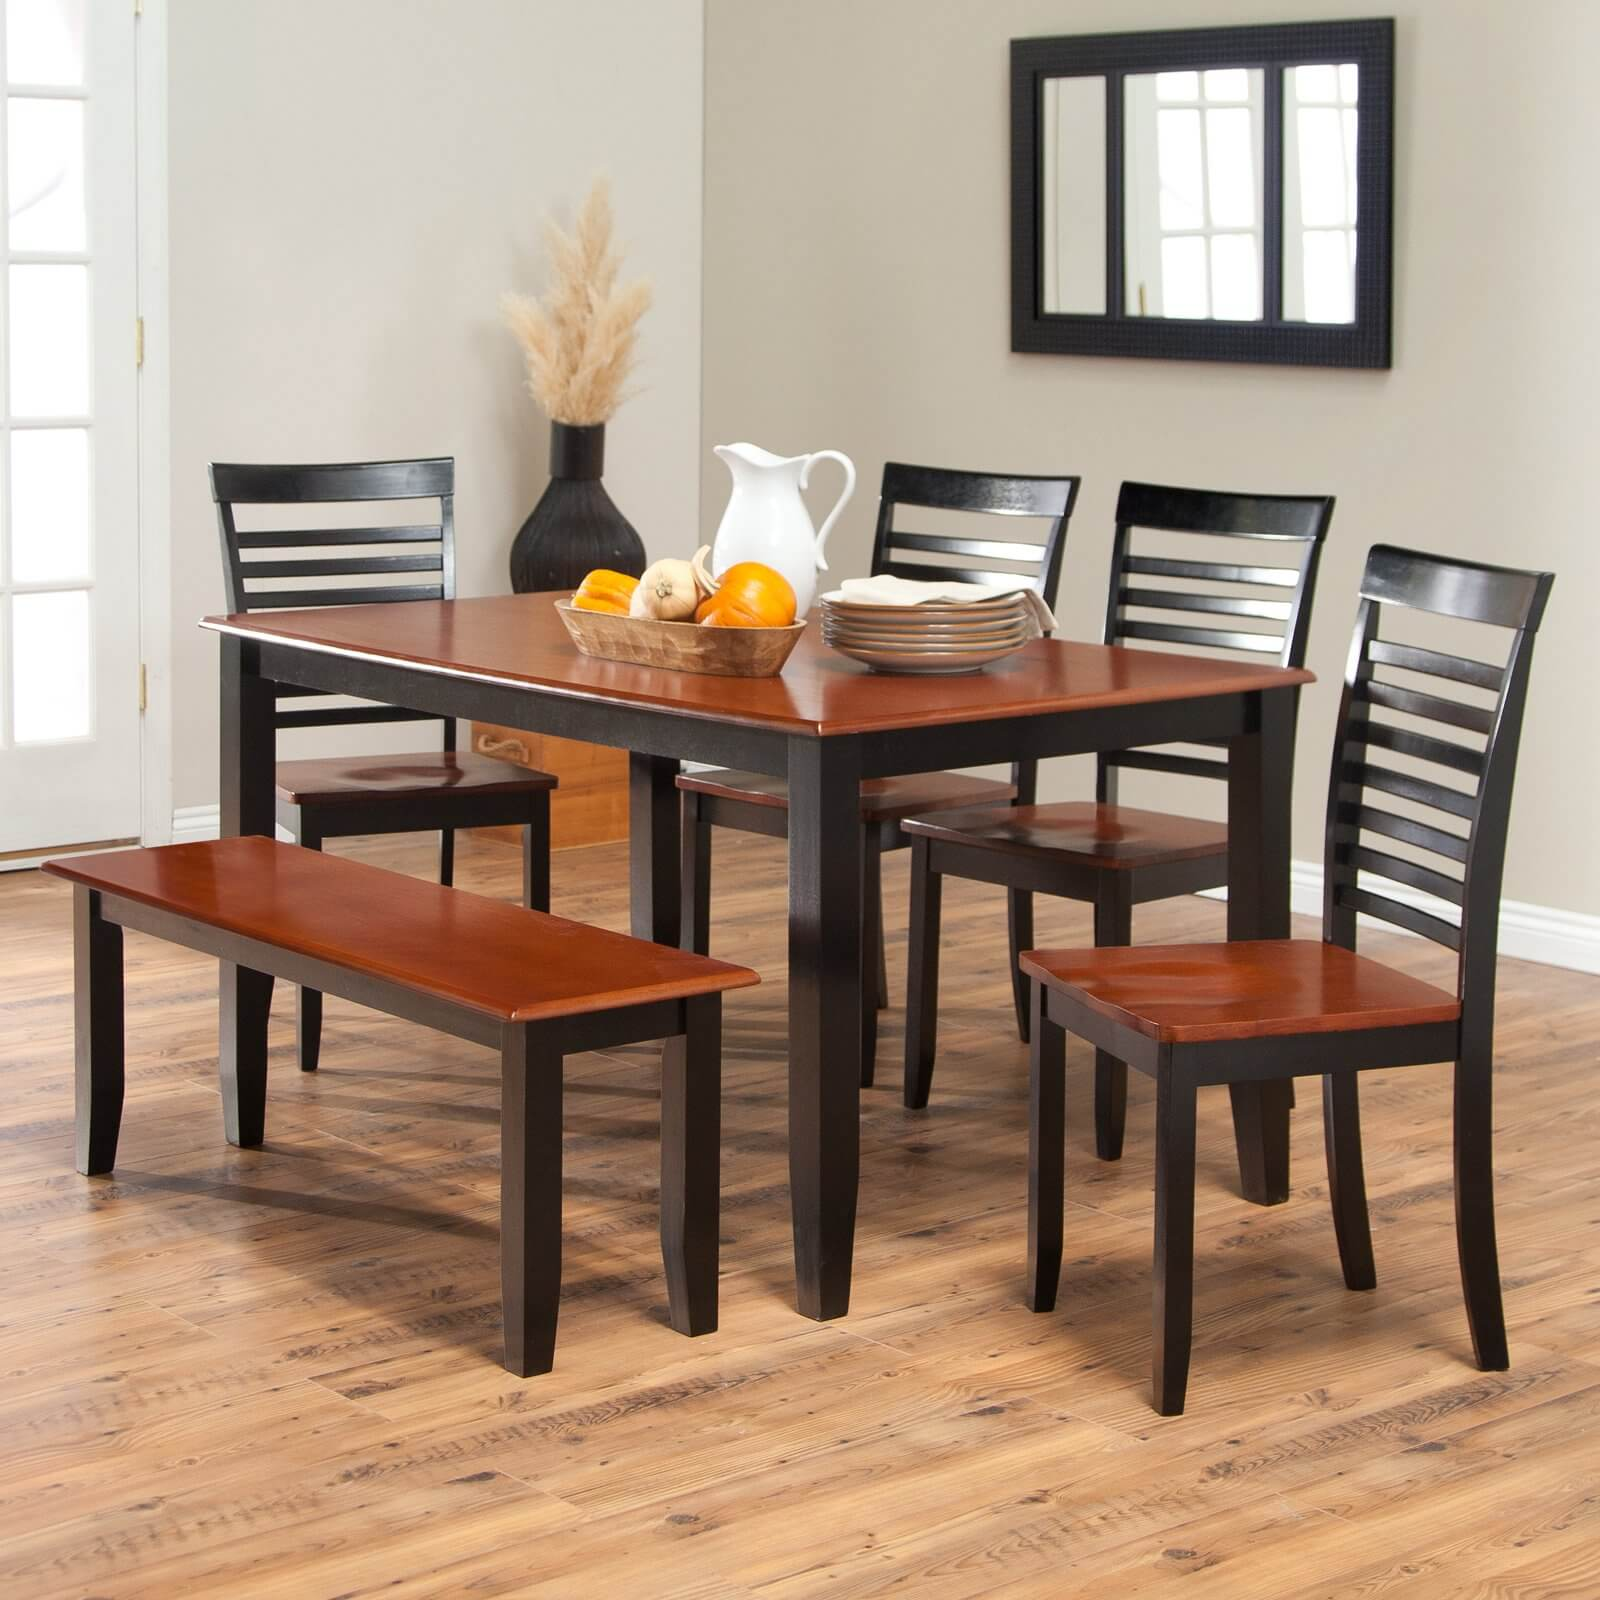 dining room sets bench seating two tone kitchen table Simple two toned dining set with bench The seats and table top are cherry